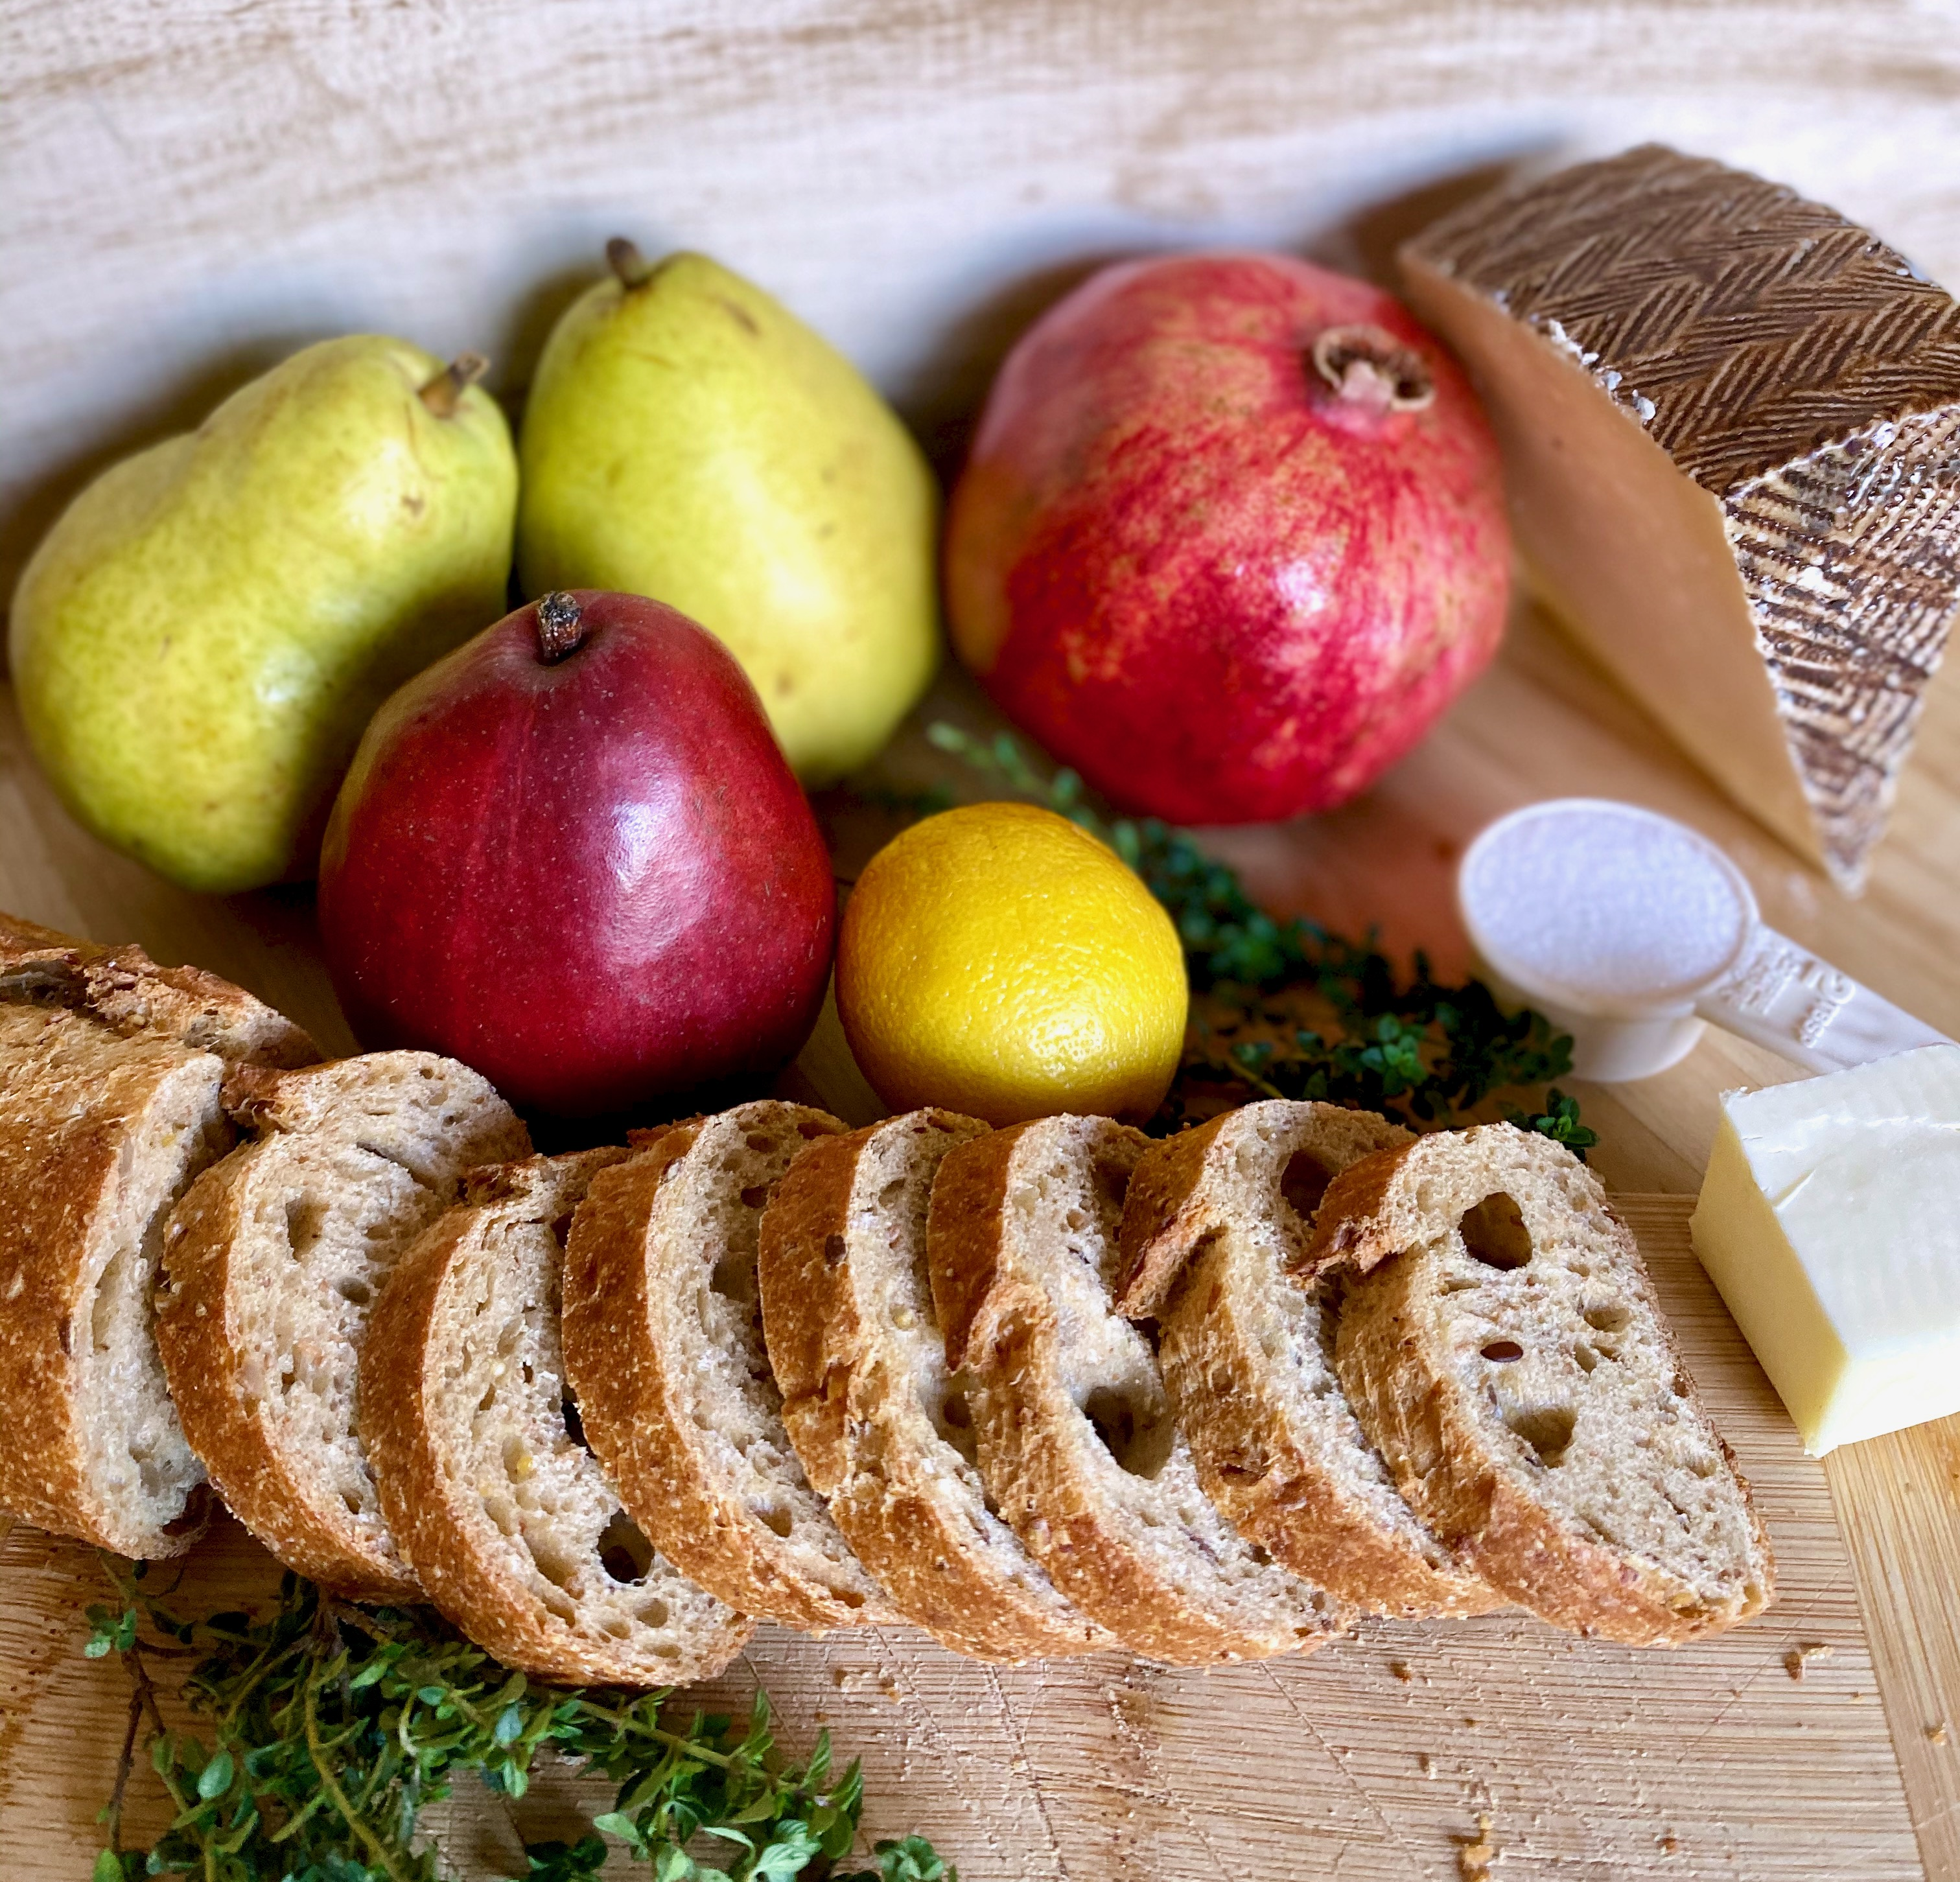 recipe ingredients: pears, bread, cheese, pomegranate, thyme, sugar, lemon